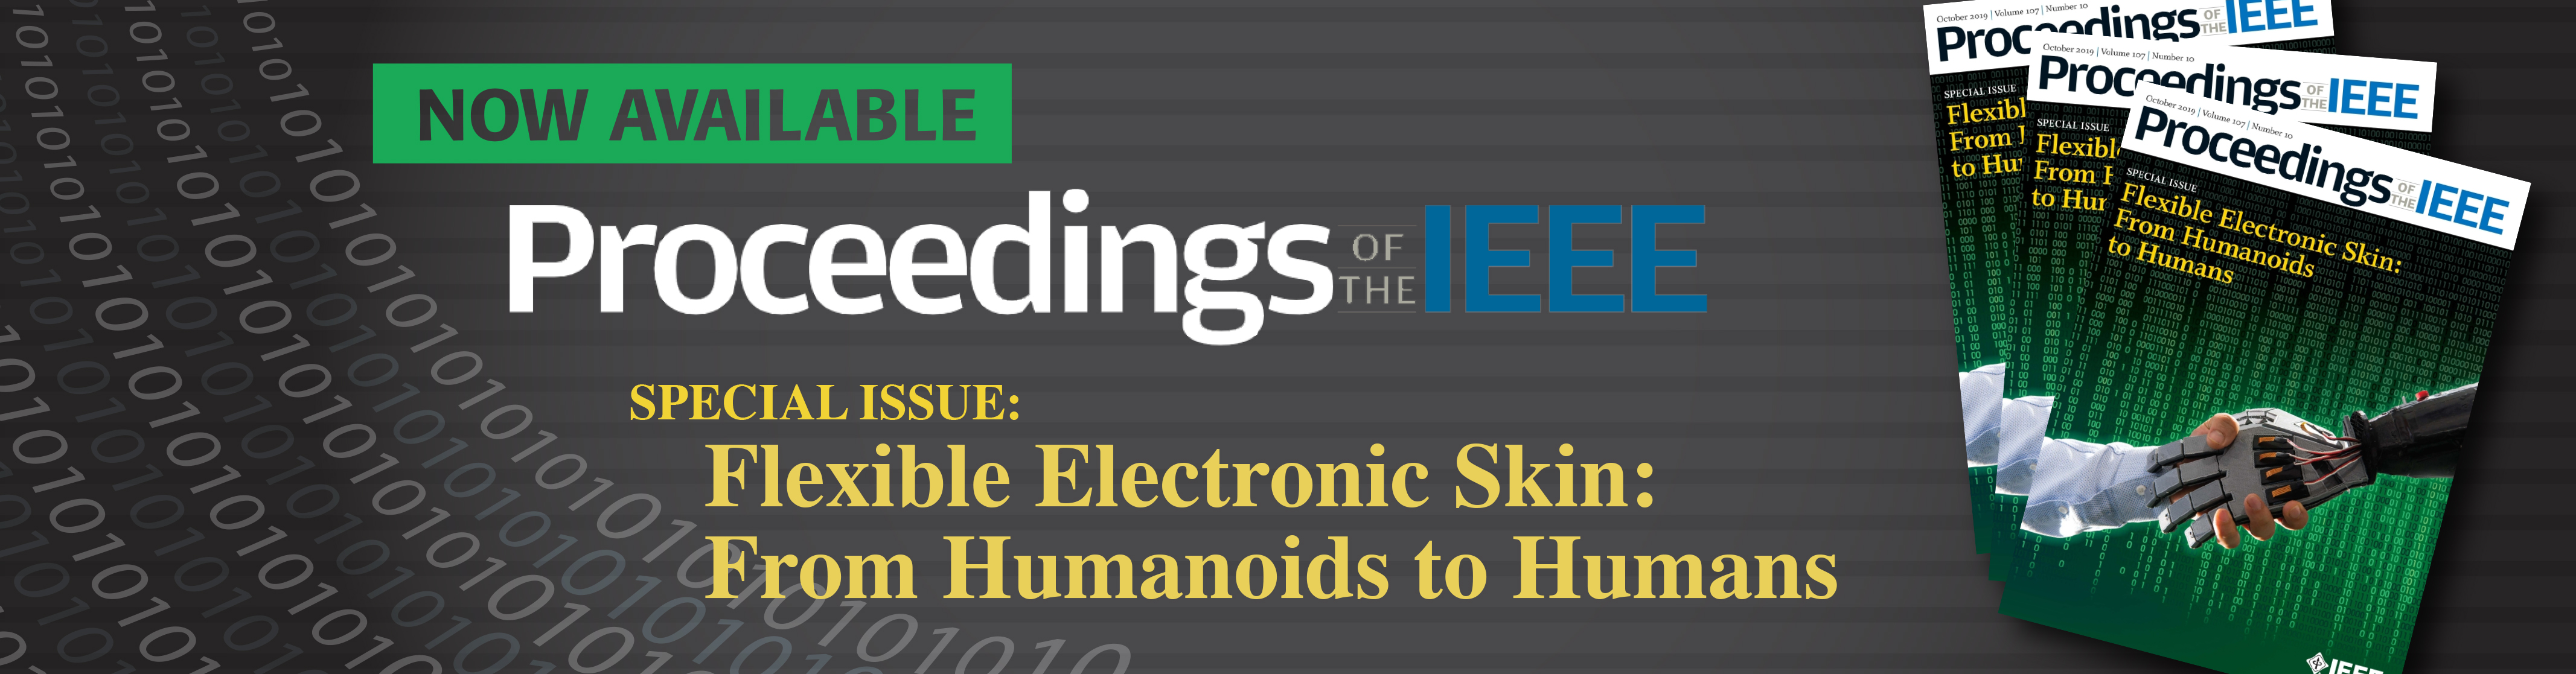 Ad for Proceedings of the IEEE Special Issue